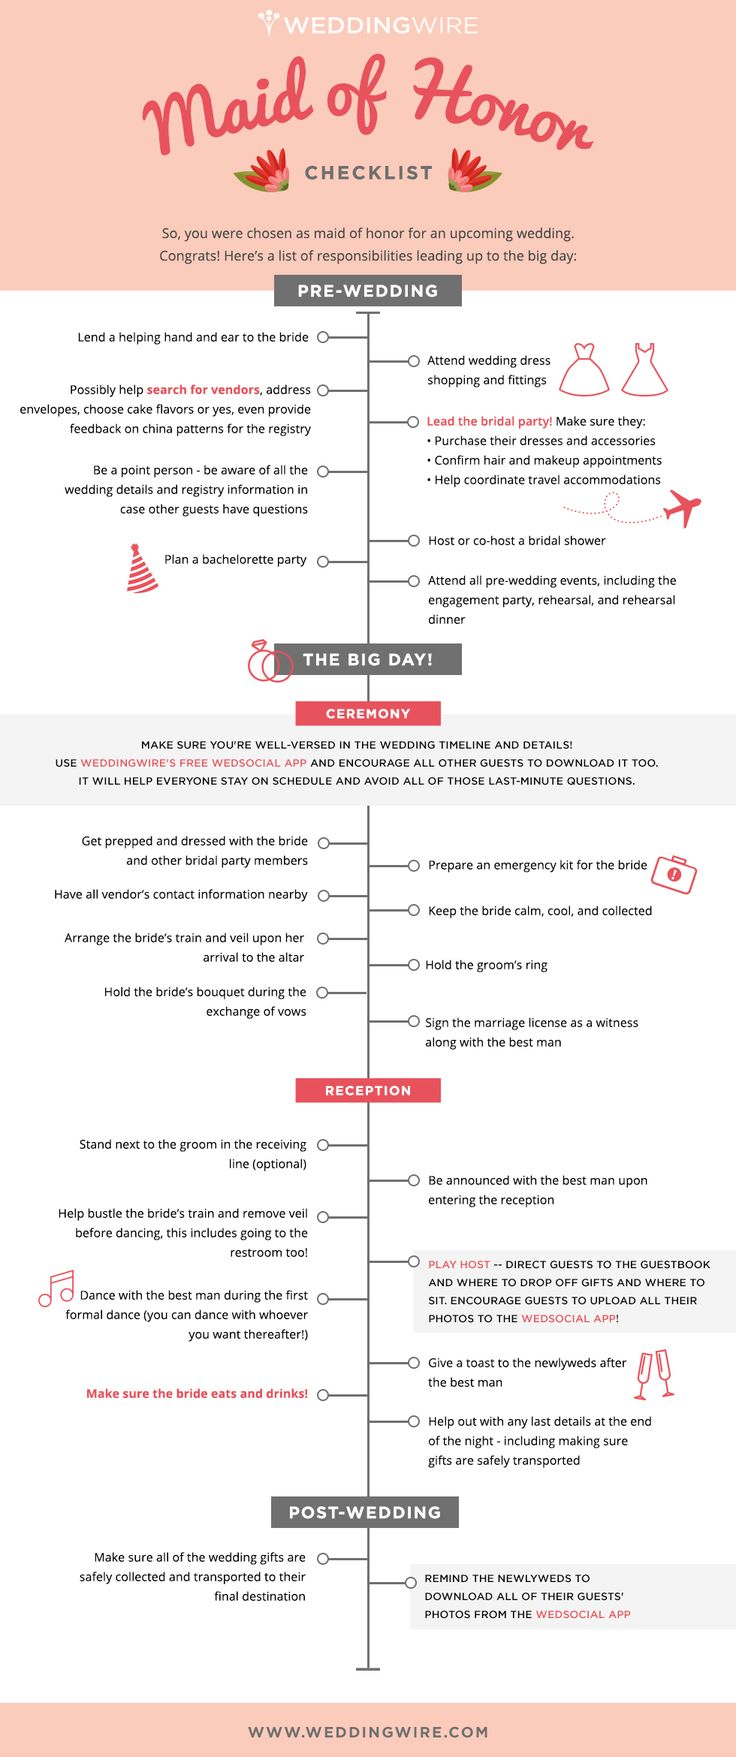 Everything You Need To Know About Being An All-Star Maid Of Honor In One Easy Checklist